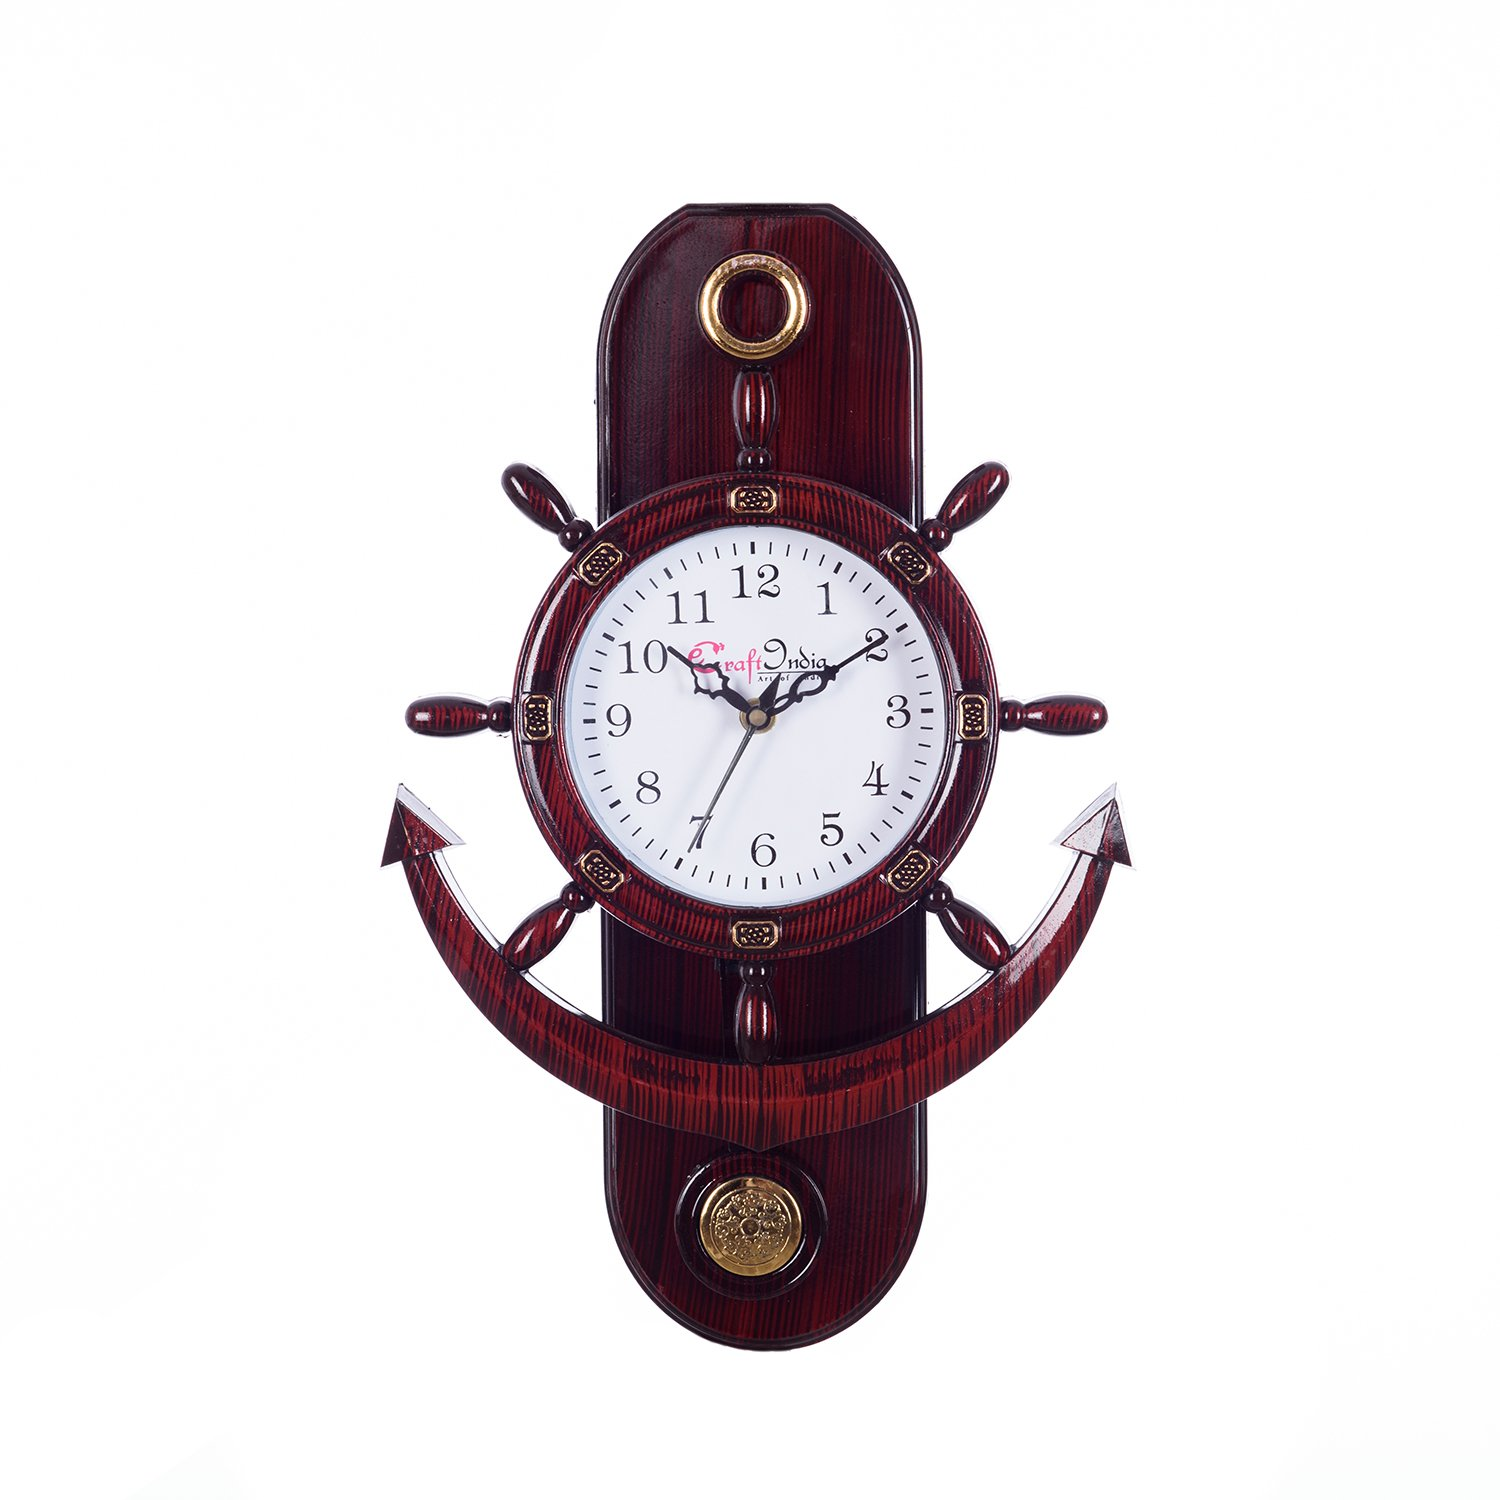 Buy ecraftindia retro decorative anchor plastic pendulum wall buy ecraftindia retro decorative anchor plastic pendulum wall clock 32 cm x 3 cm x 40 cm brown online at low prices in india amazon amipublicfo Images